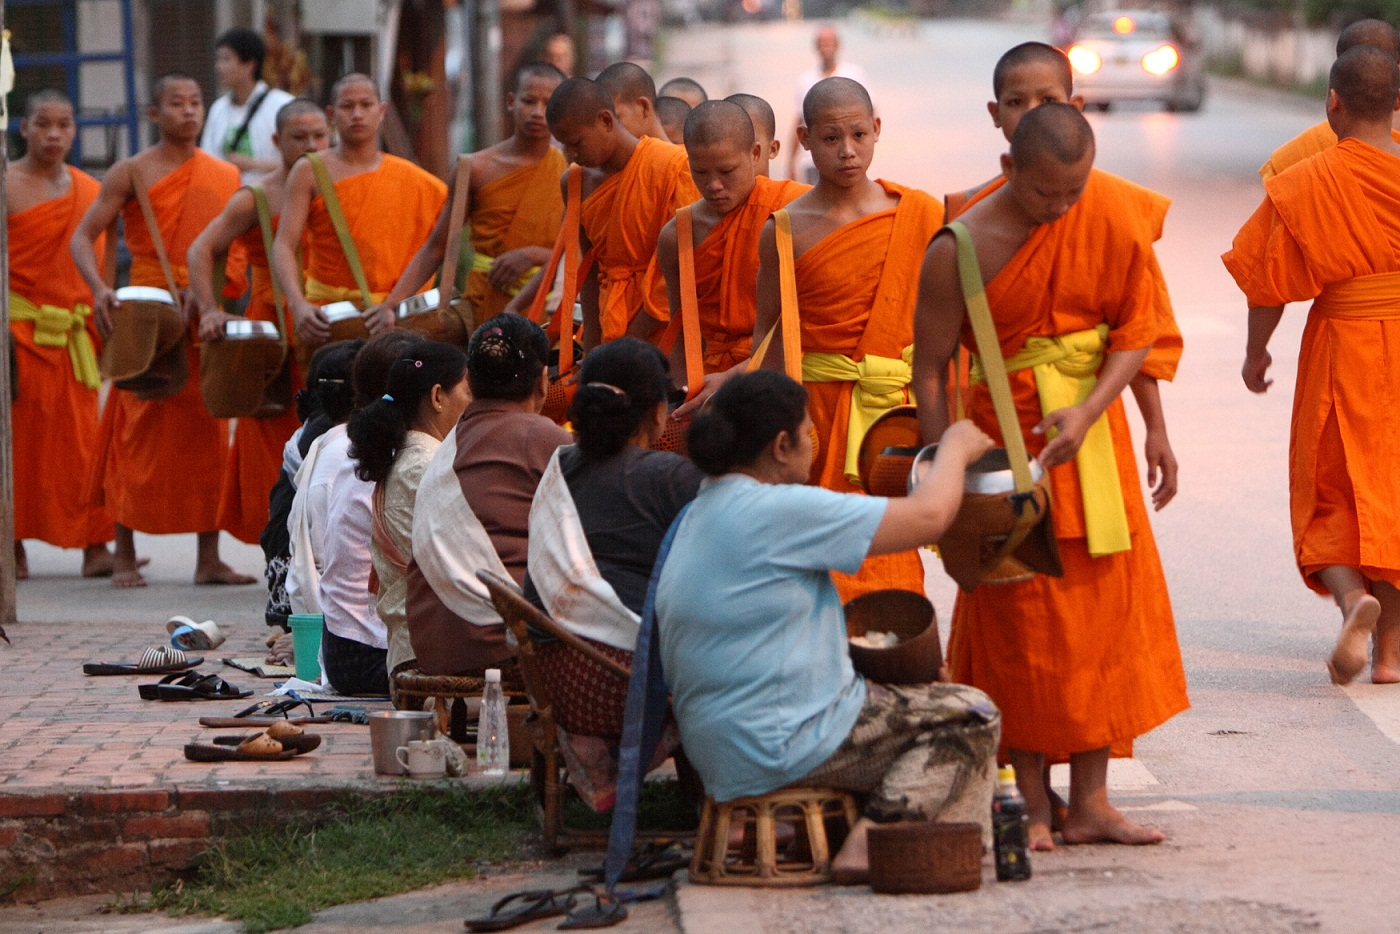 Monks Collecting Alms At Dawn, Luang Prabang